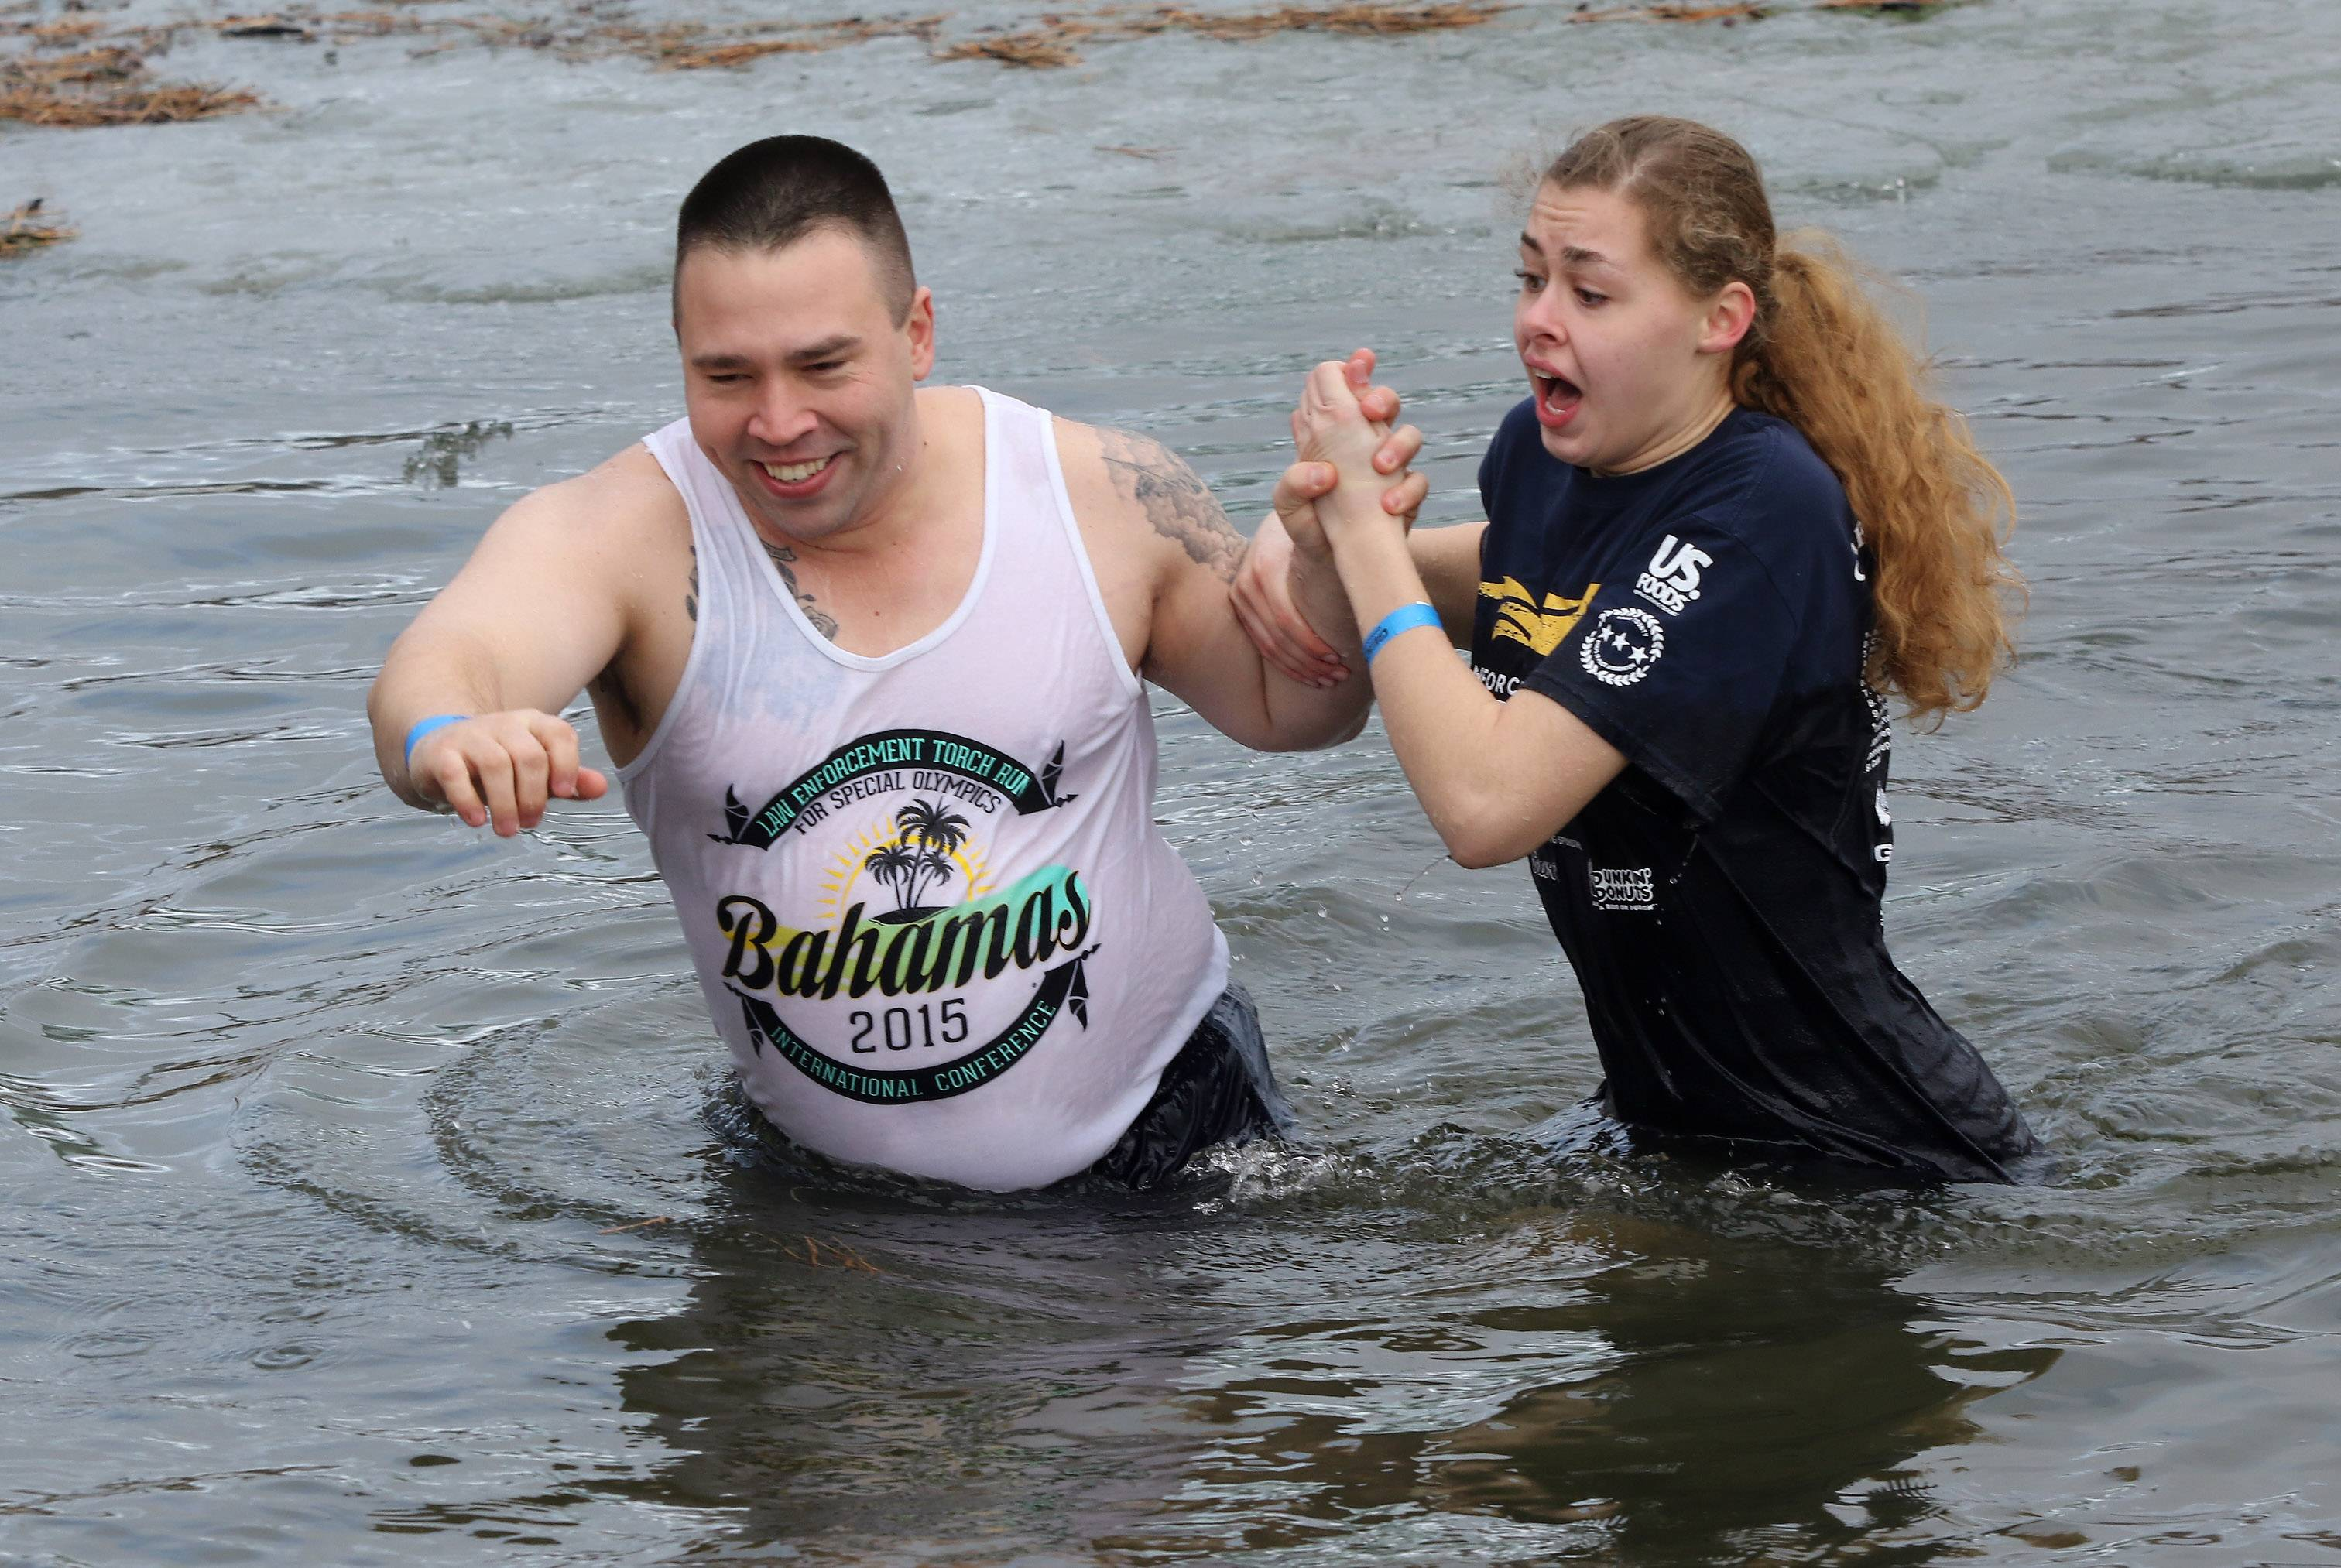 Carpentersville police officer Joe Pilarski and Special Olympics athlete Bree Bogucki walk in the frigid water during the annual Palatine Polar Plunge on Sunday at Twin Lakes Recreation Area in Palatine. The event is presented by the Law Enforcement Torch Run and GEICO to support Special Olympics athletes.